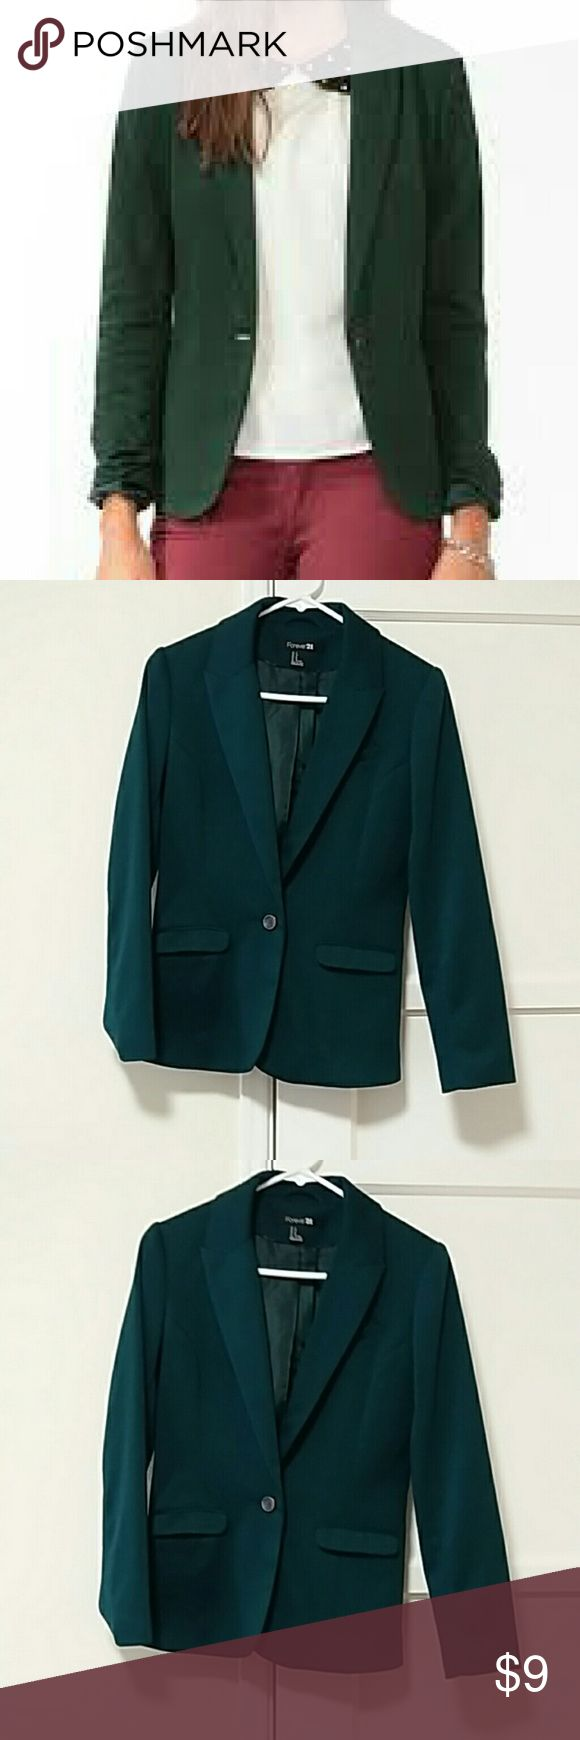 Forever 21 Women suit jacket good condition Forever 21 Jackets & Coats